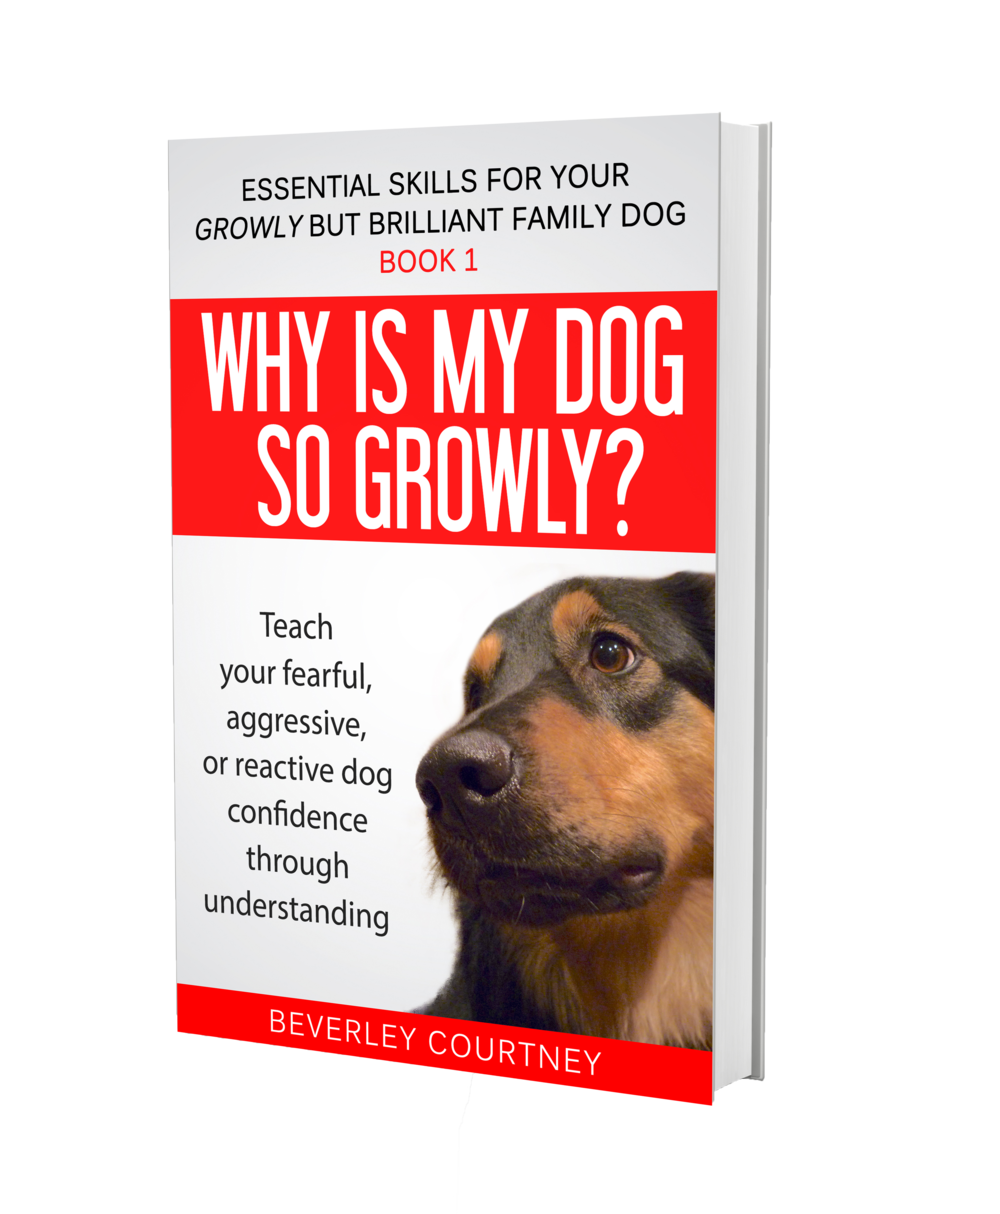 Dog training book, aggressive dog, reactive dog | Why is my Dog so Growly? Book 1 by Beverley Courtney | www.brilliantfamilydog.com